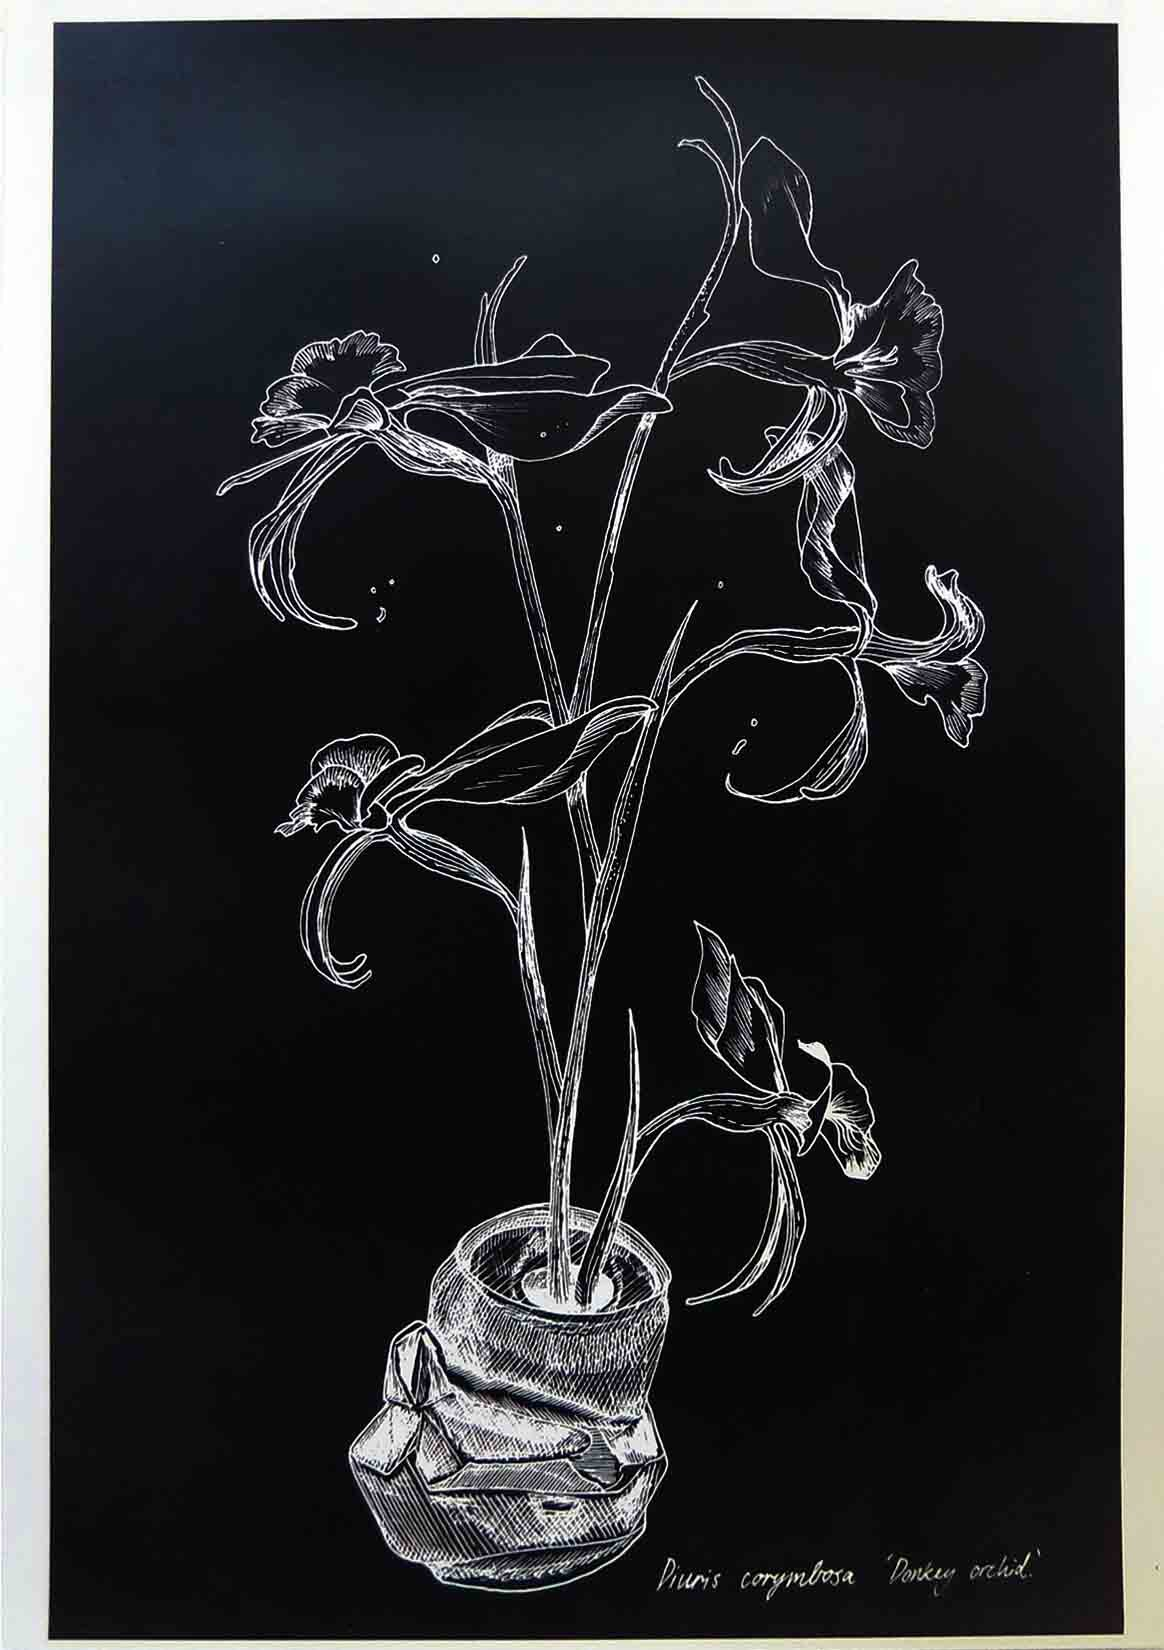 7. Jack Bromell Donkey Orchid growing out of a tinny #2, 2019 digital print 42 x 30 cm $50